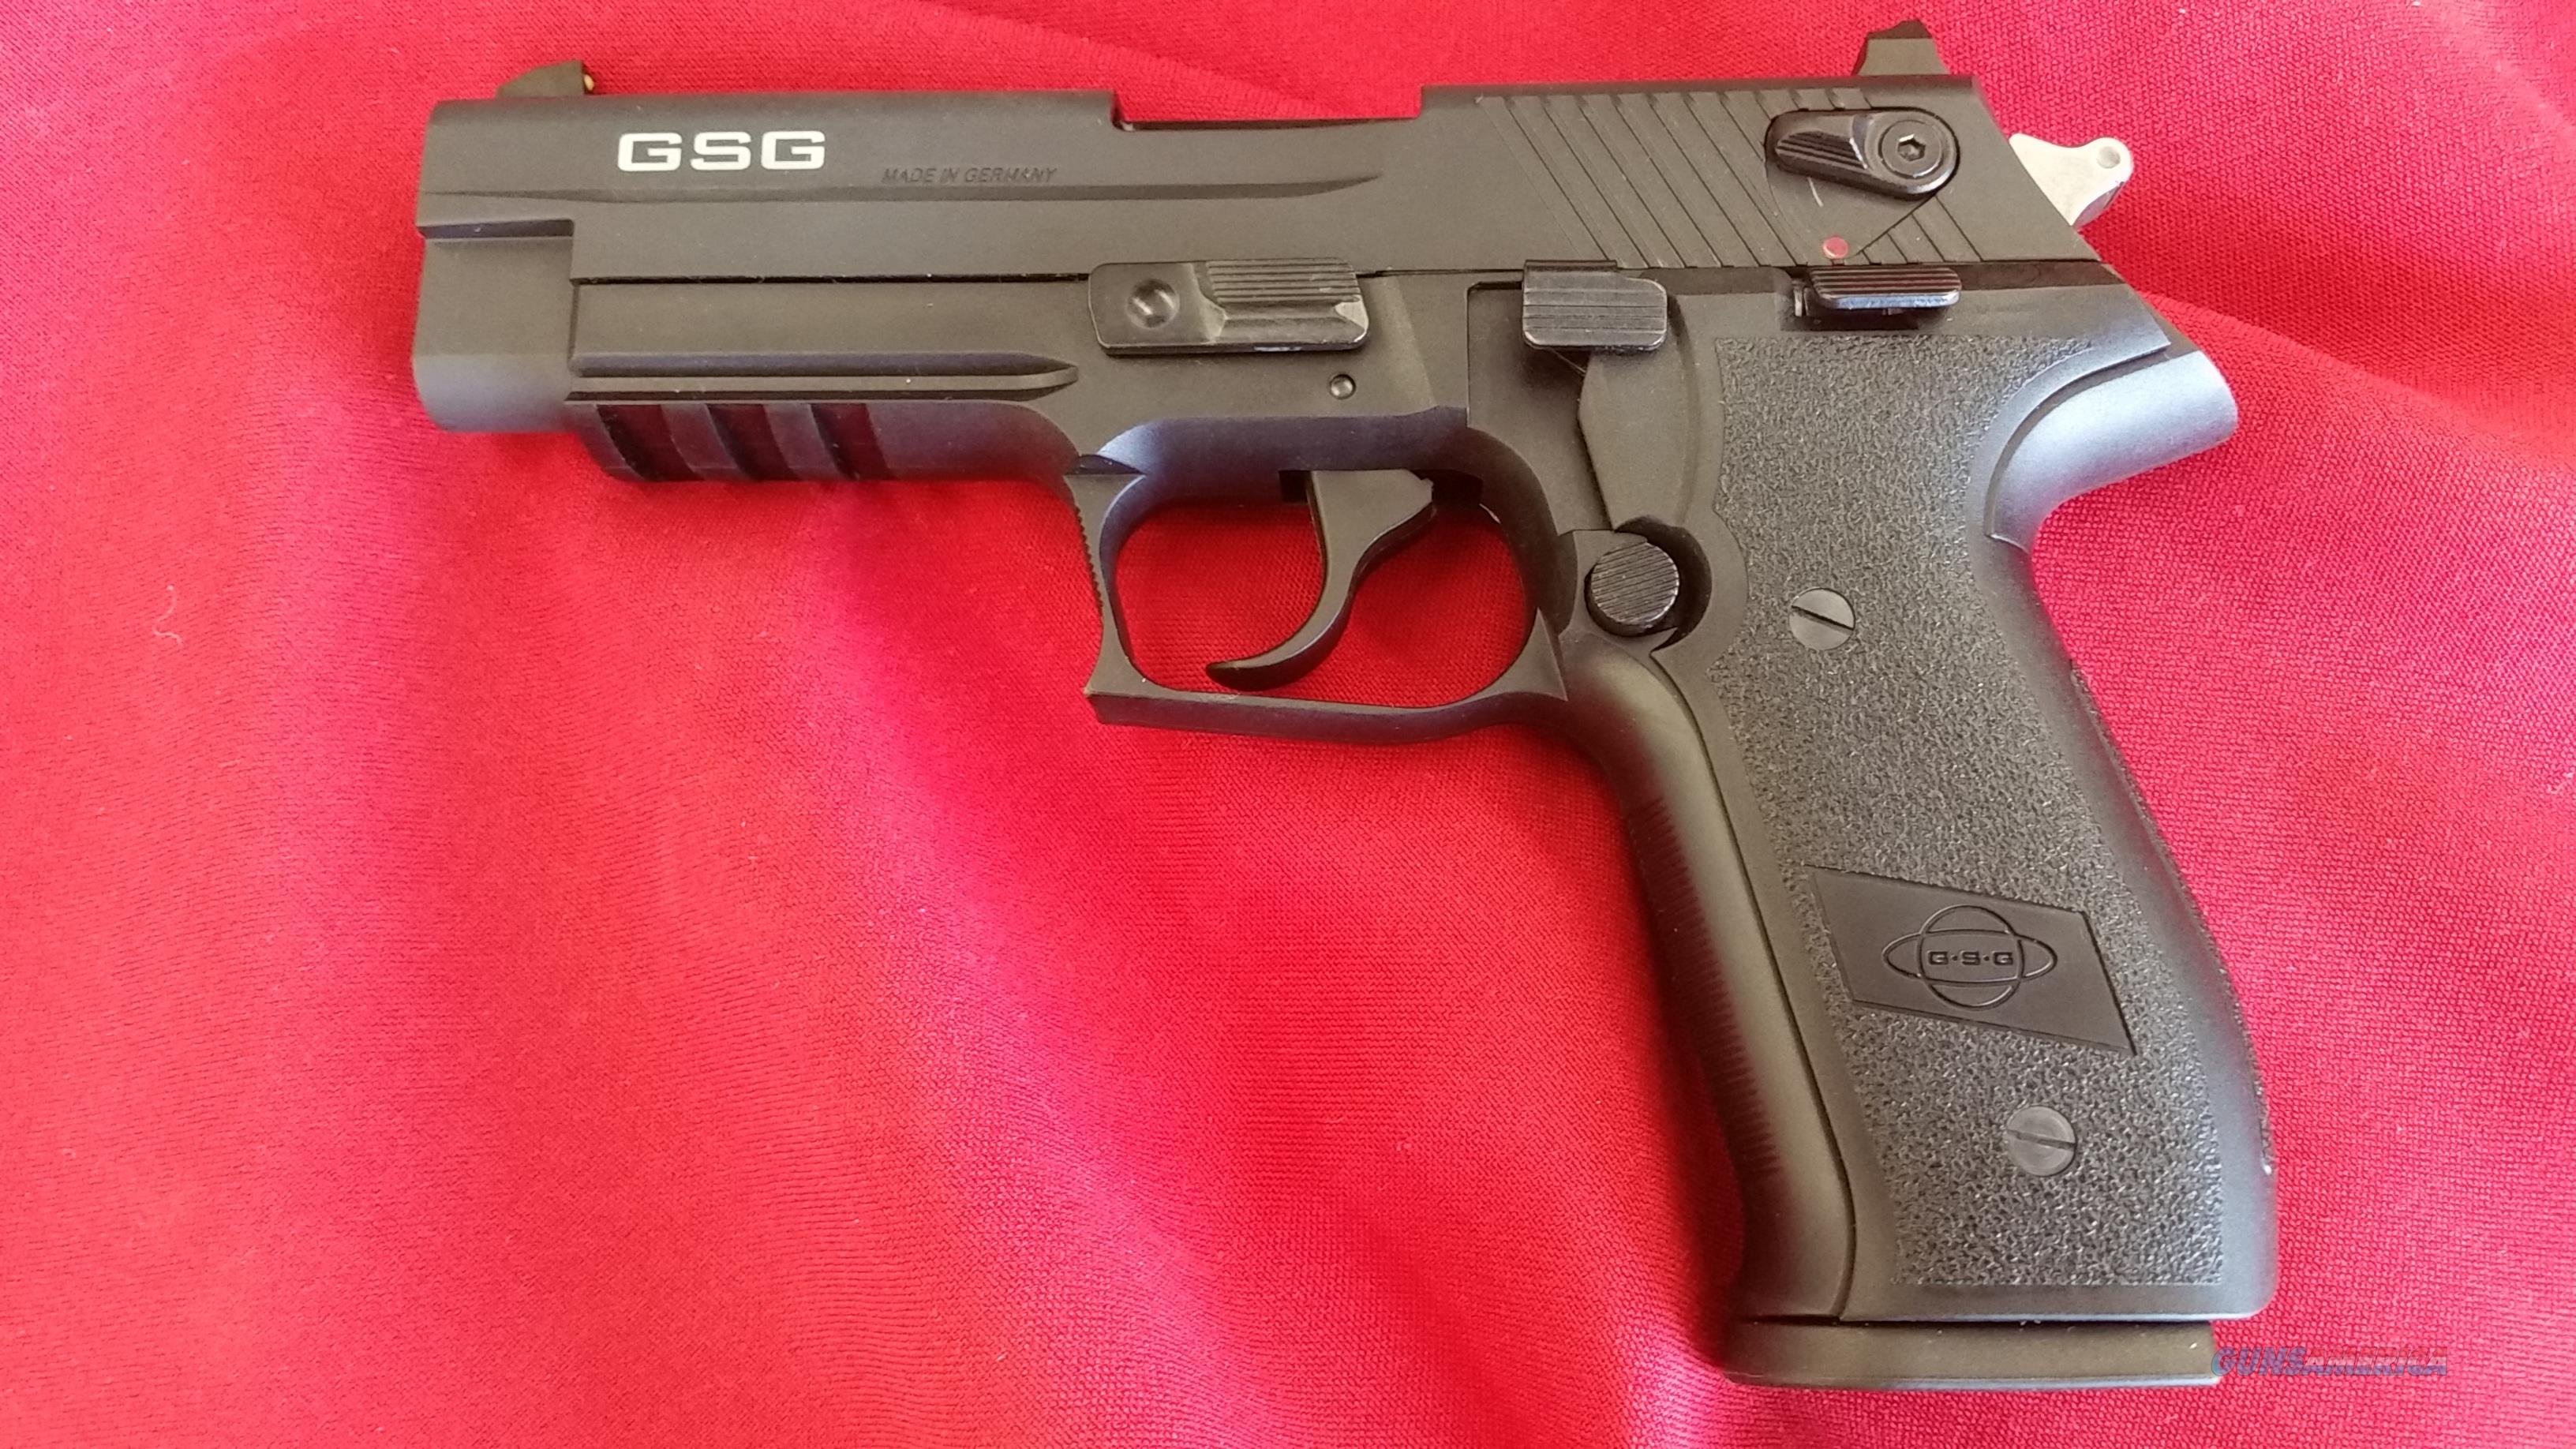 ATI GSG Semi-Automatic Firefly 22LR w/ 10+1 mag   Guns > Pistols > American Tactical Imports Pistols